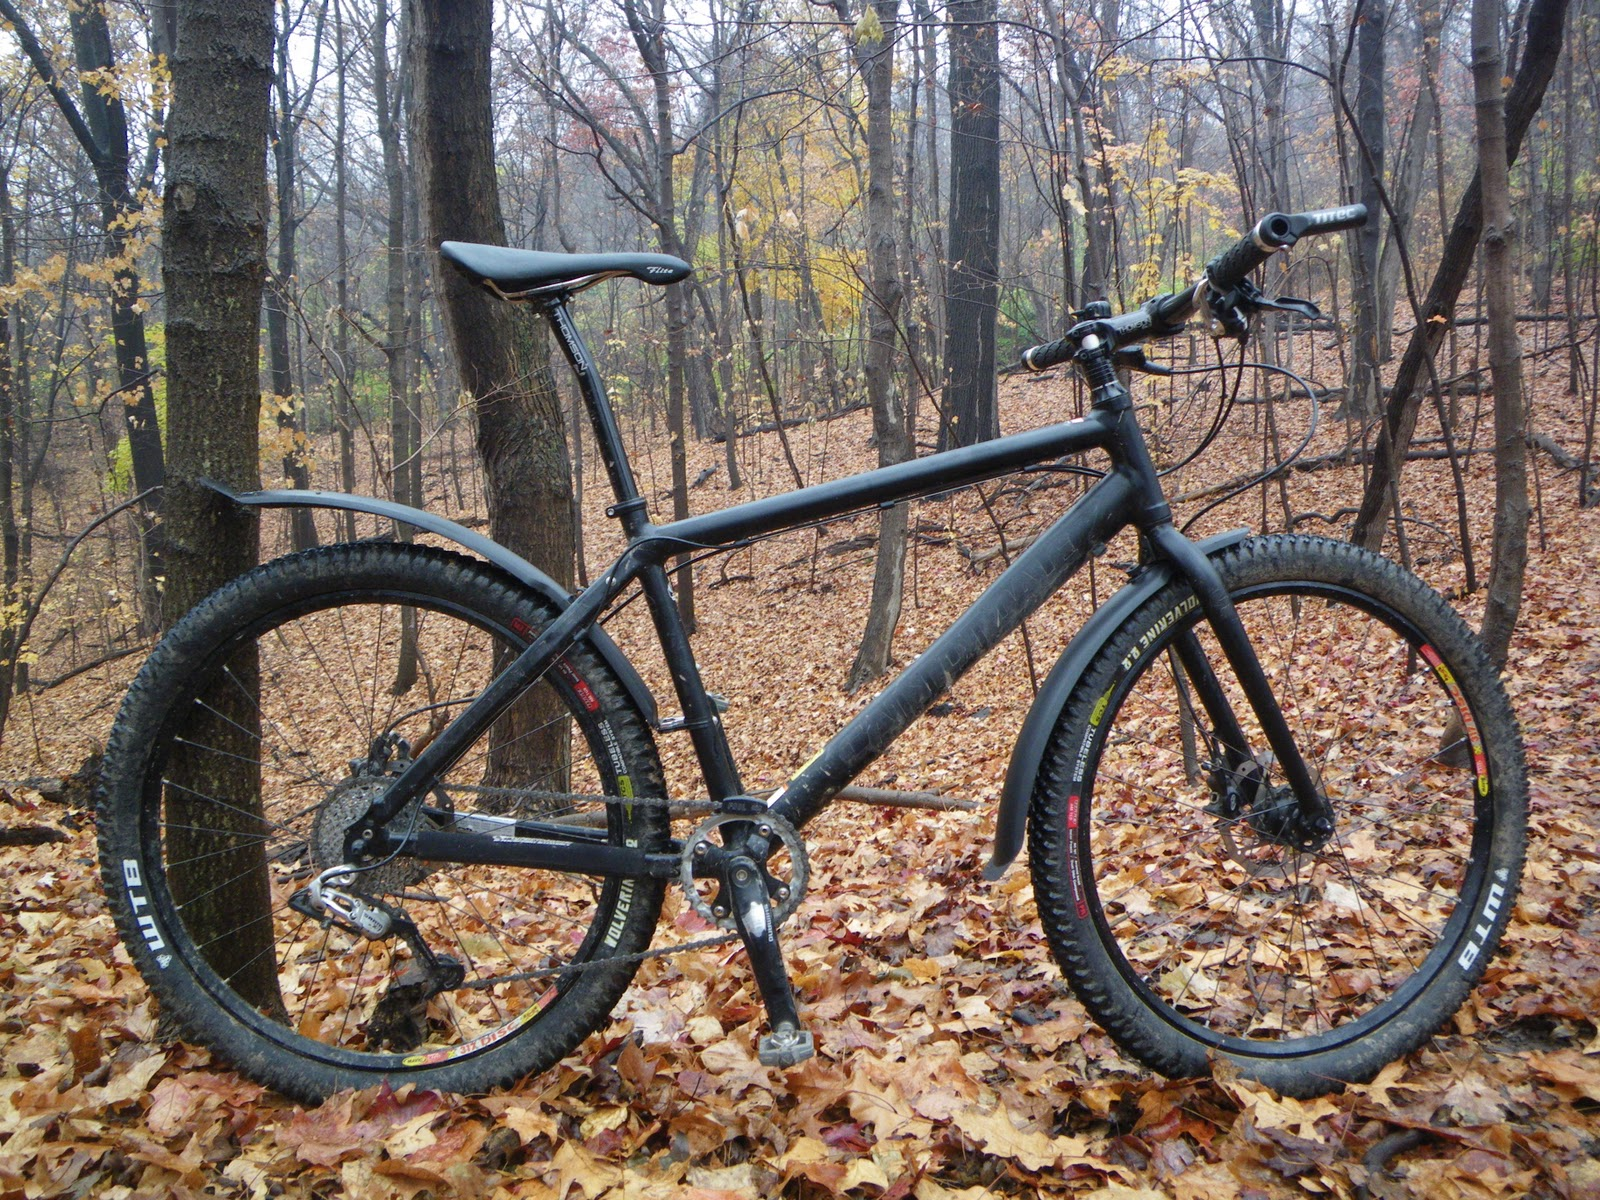 Achterspatbord Mountainbike Homemade Road Bike Fenders Homemade Ftempo